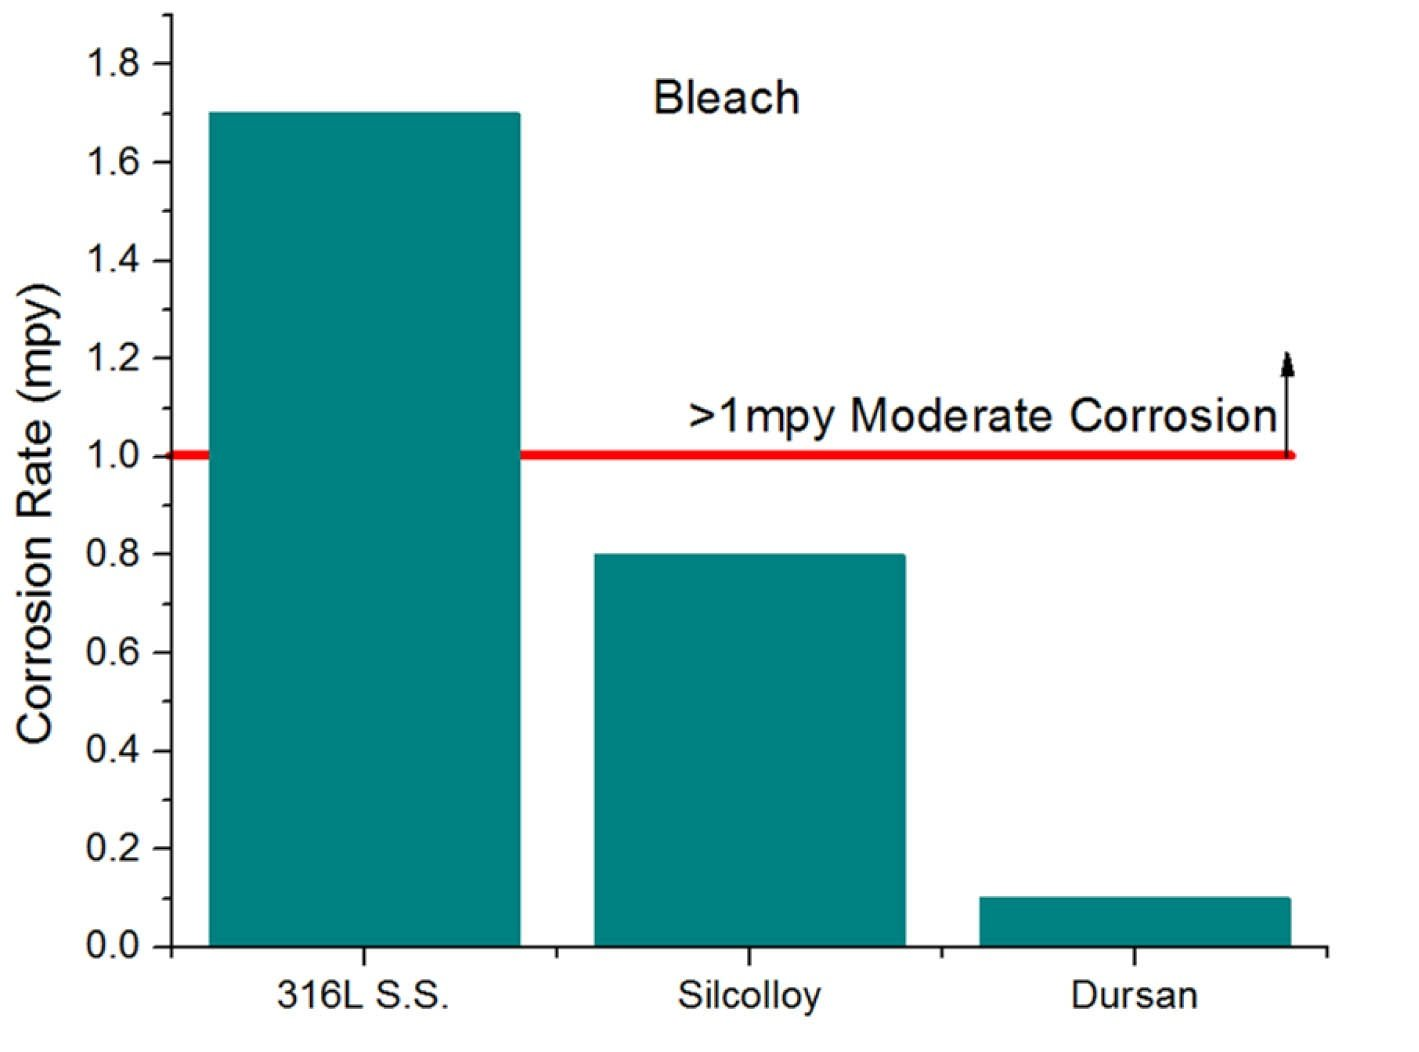 Dursan_bleach_comparison.jpg